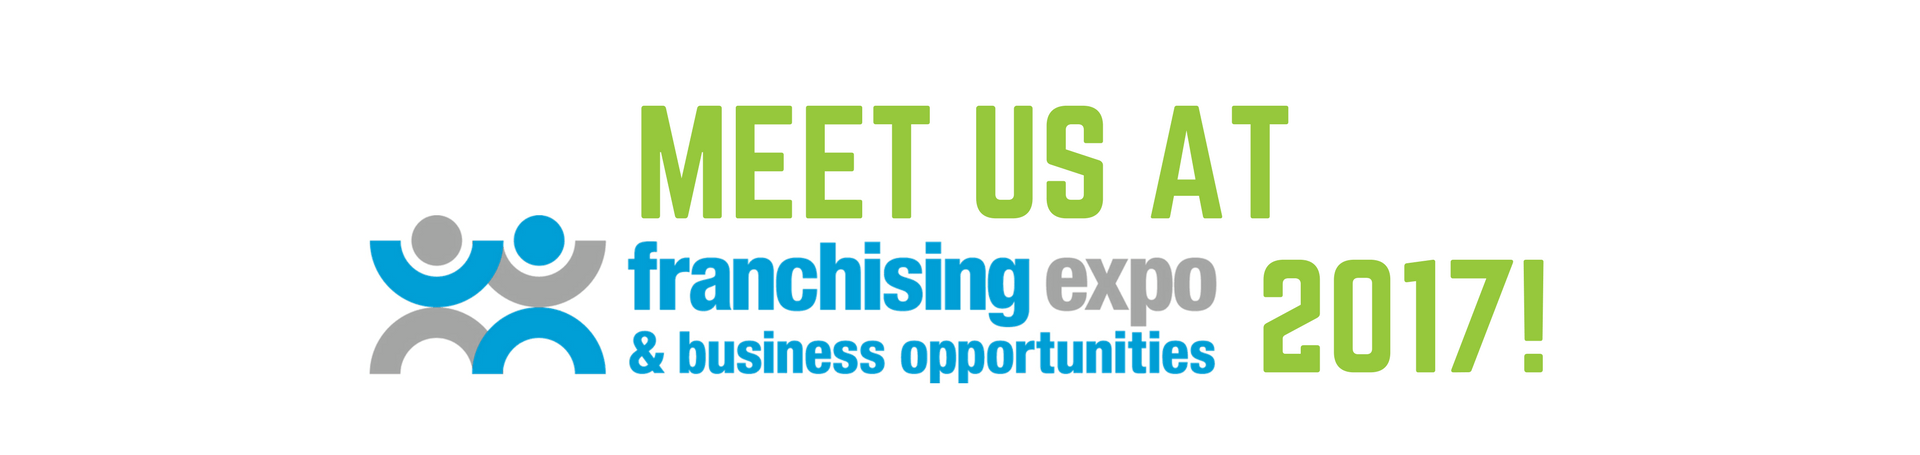 Fantastic Services Group at Franchising Expo 2017